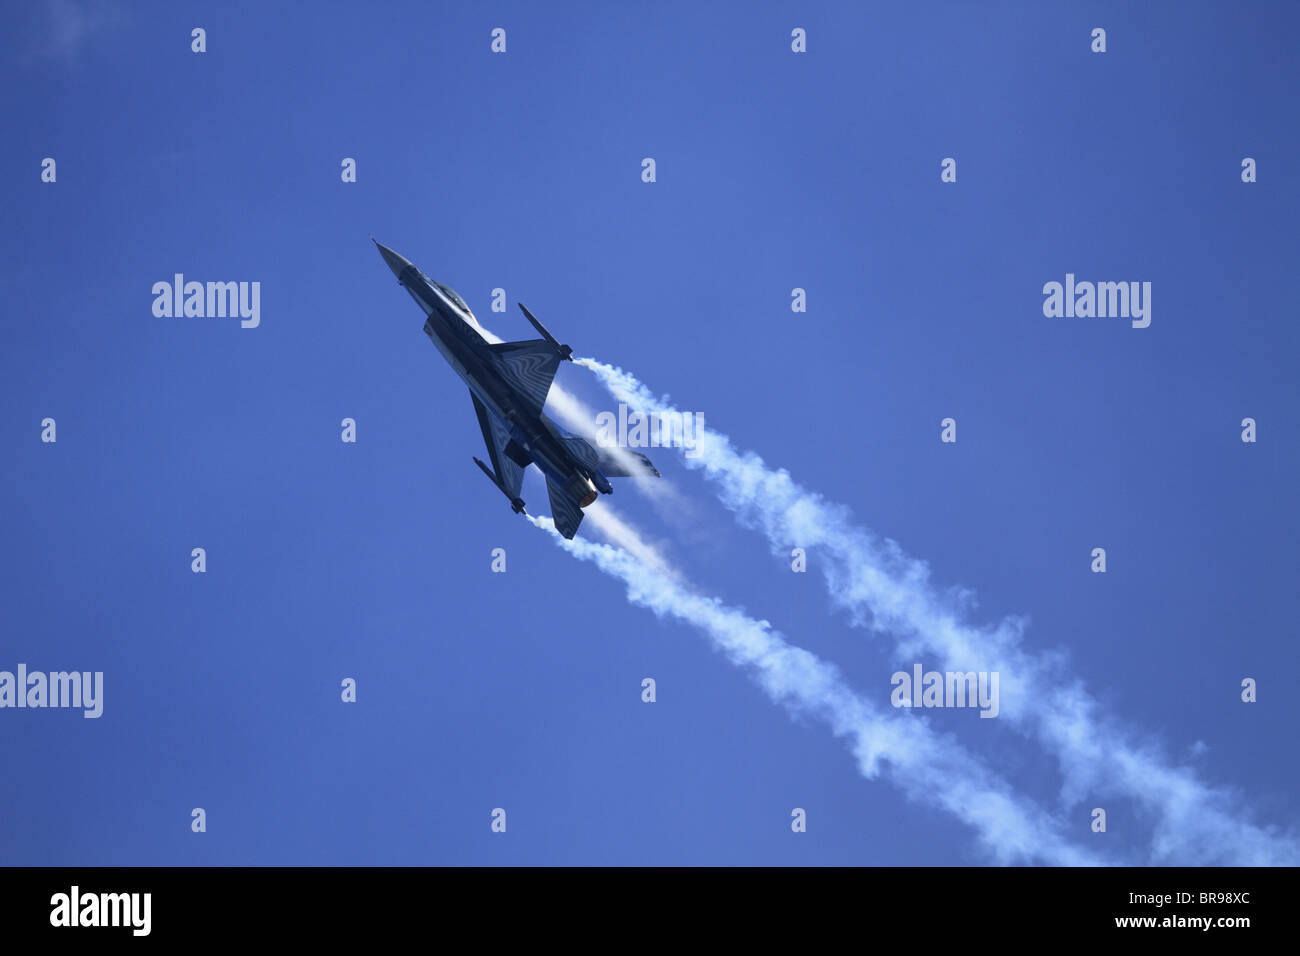 A Belgian Air Force F16 (Lockheed Martin F-16 Fighting Falcon) Fighter Jet performs at Eastbourne Air Show, East - Stock Image